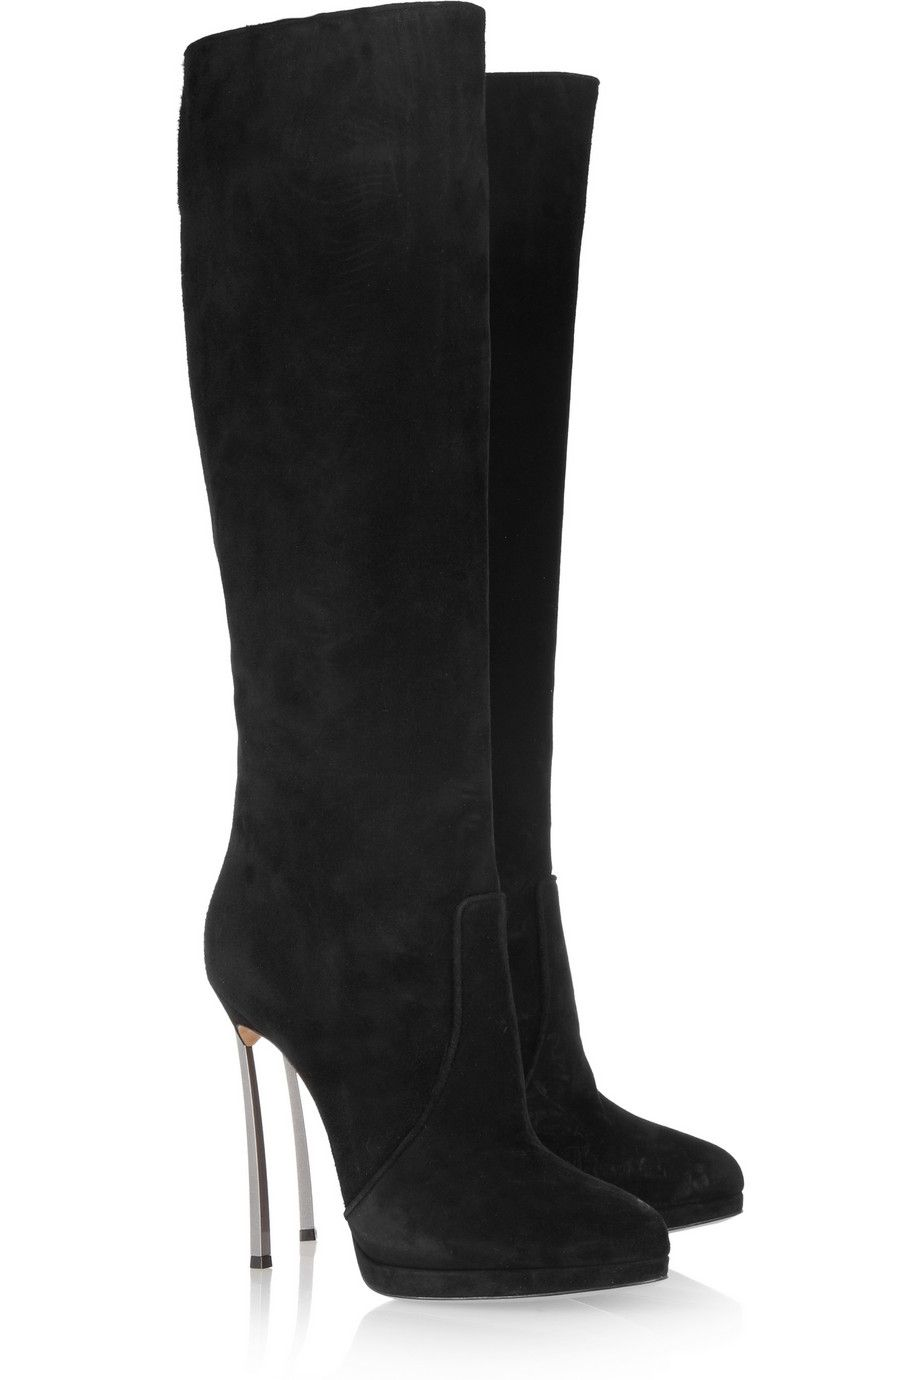 f710f64feb28 CASADEI Suede knee boots